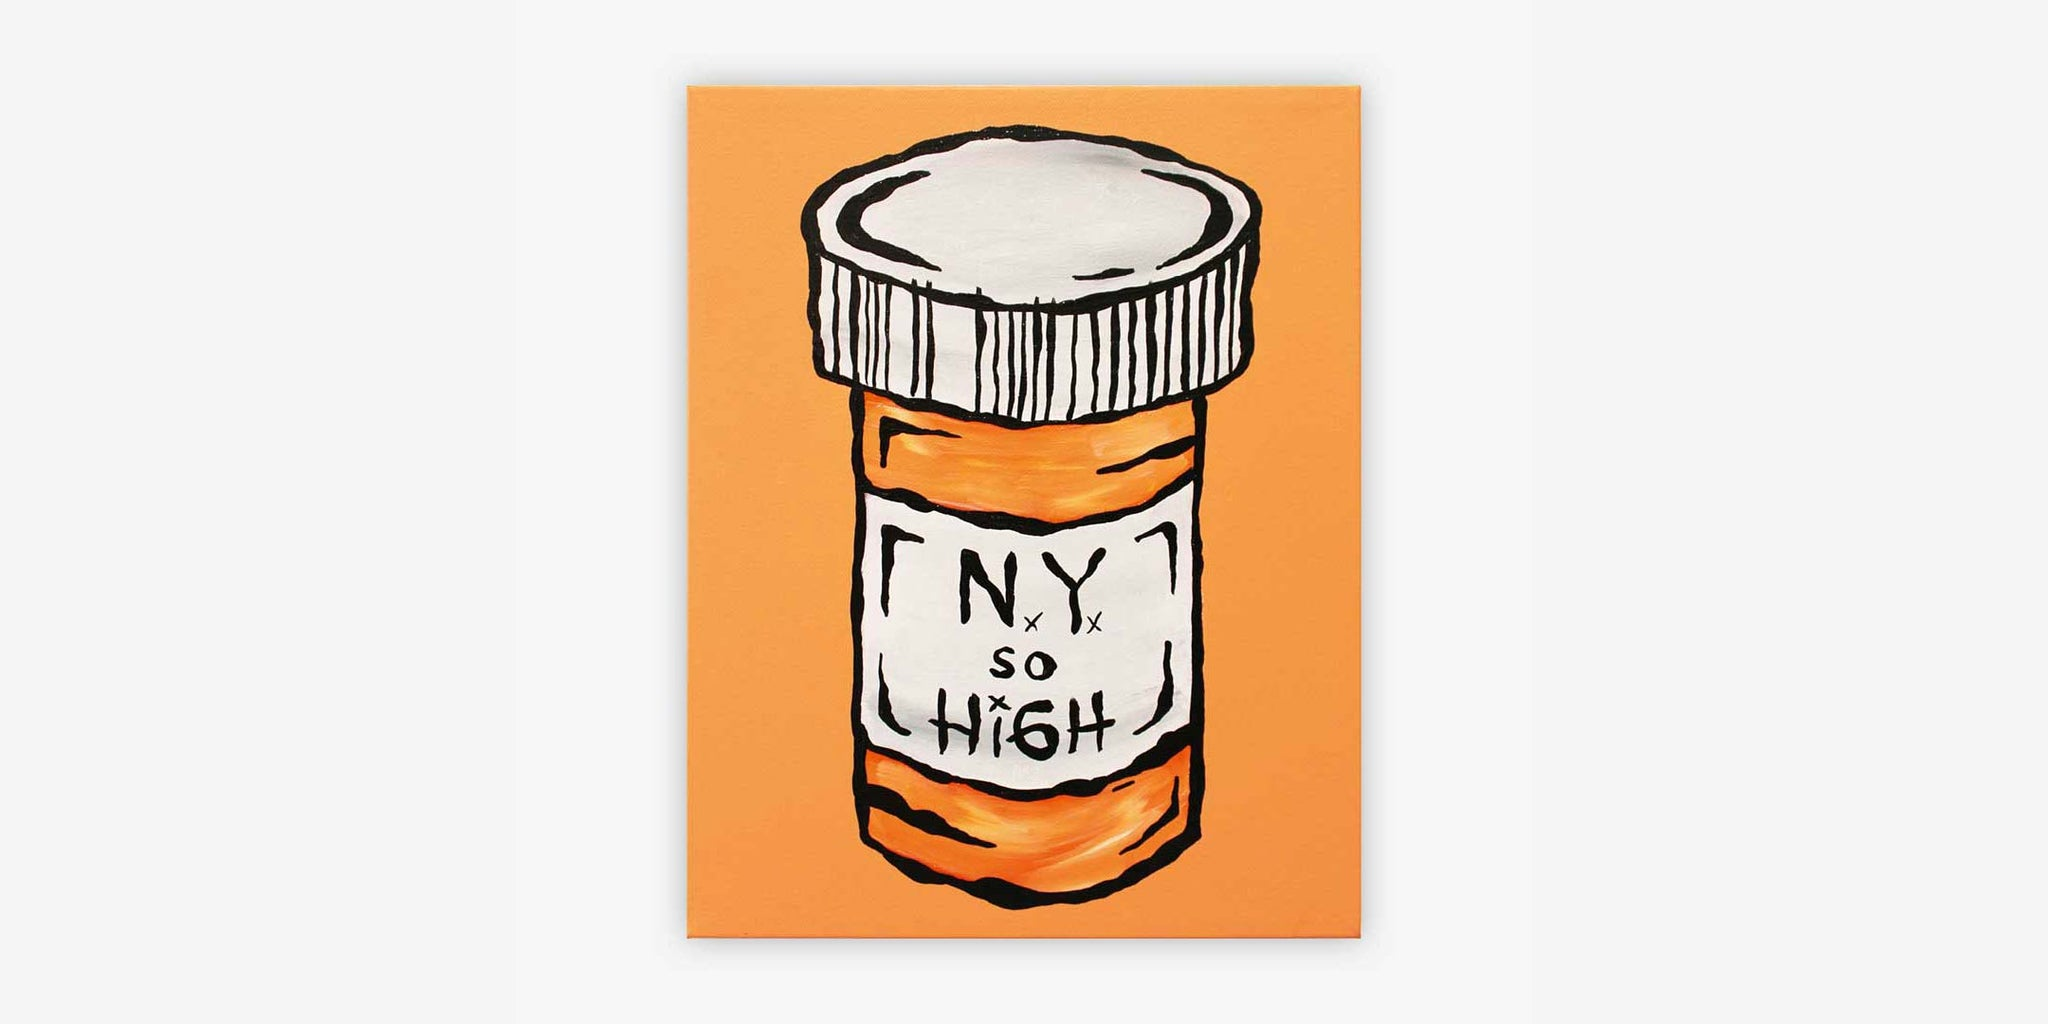 ART  – NY so high